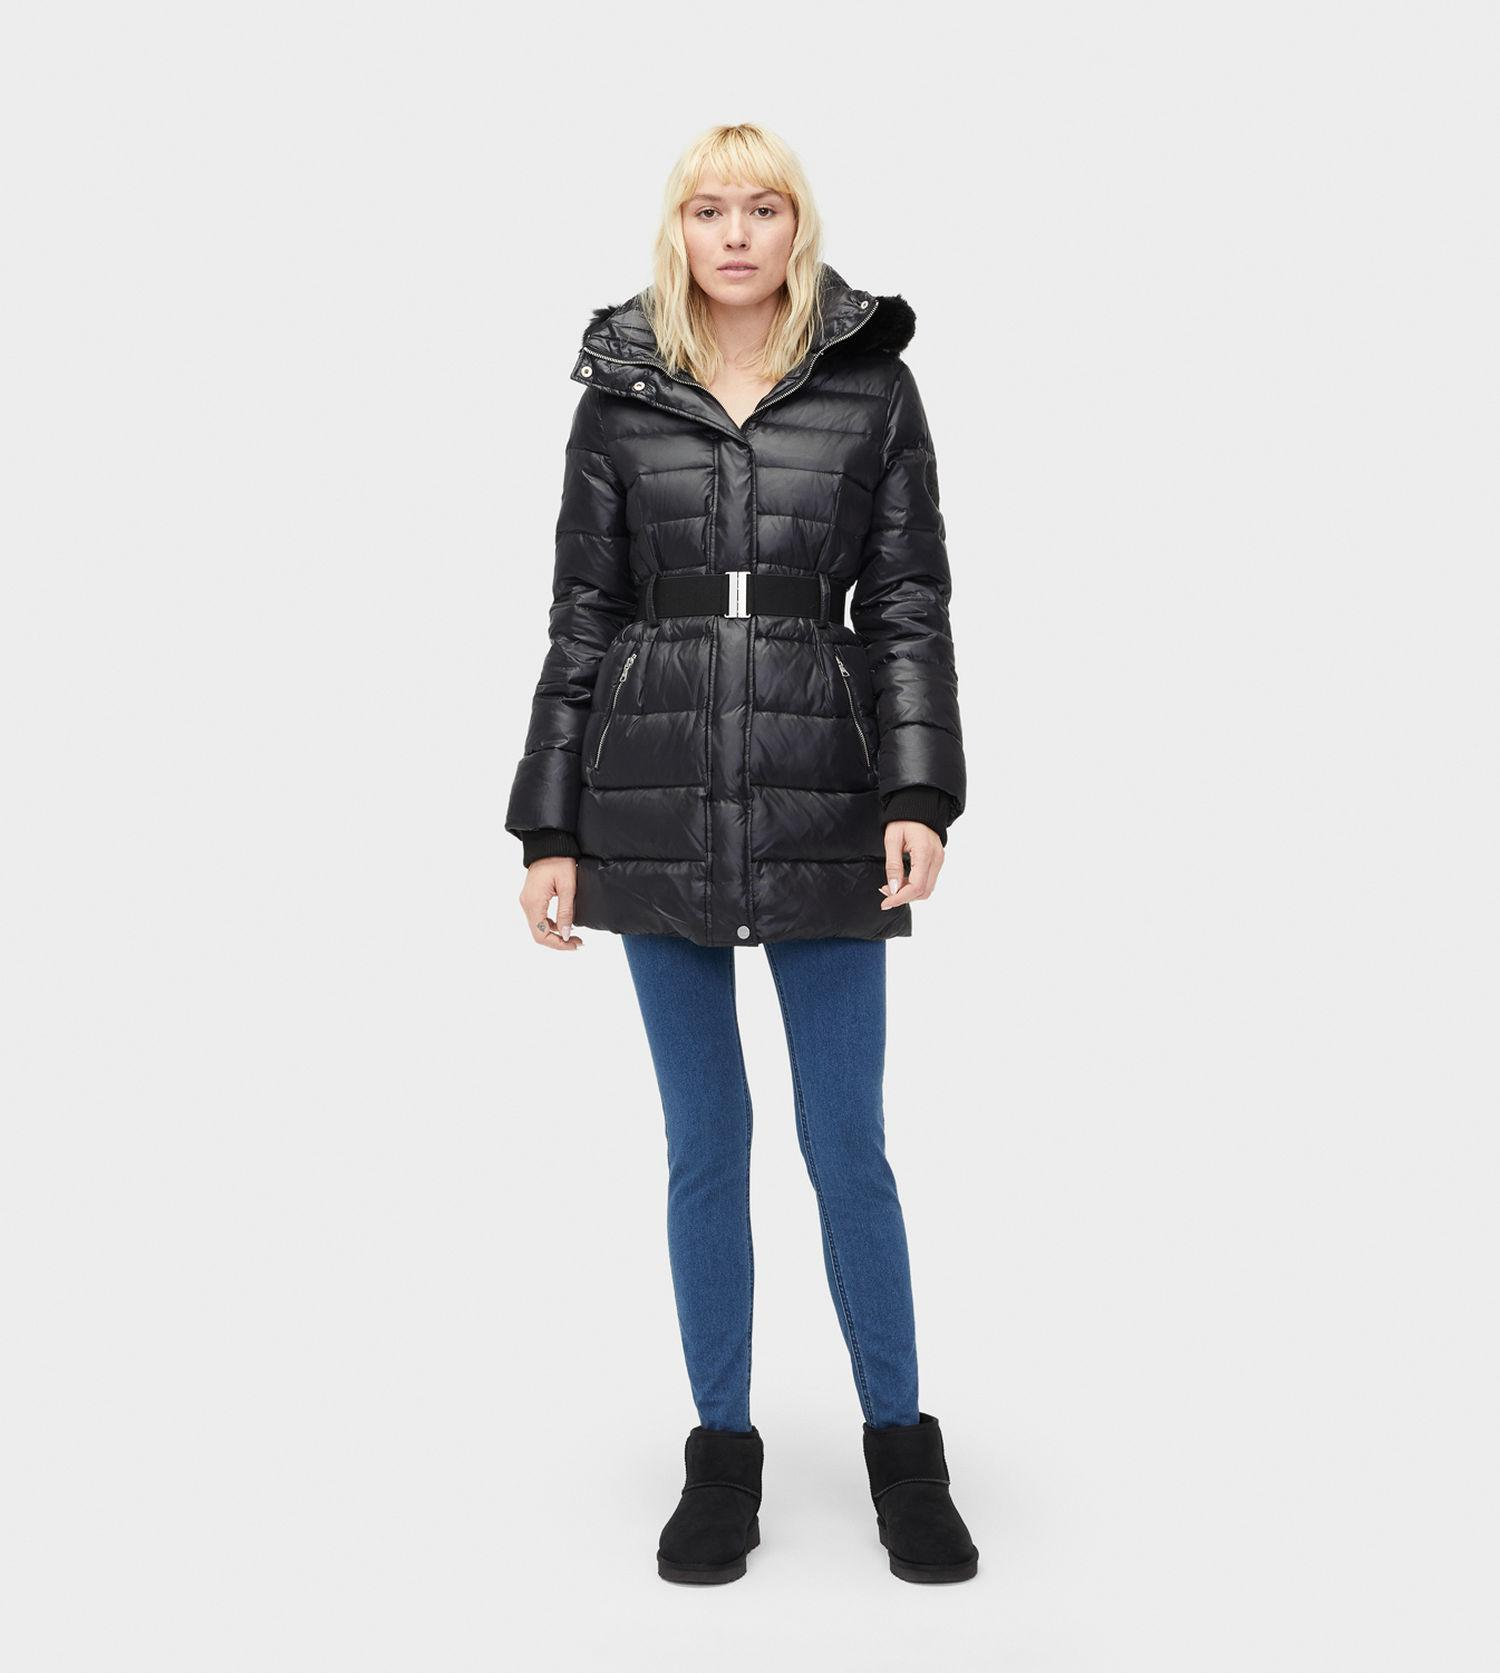 Ugg - Black Women s Valerie Belted Down Coat - Lyst. View fullscreen 7e167fb6c